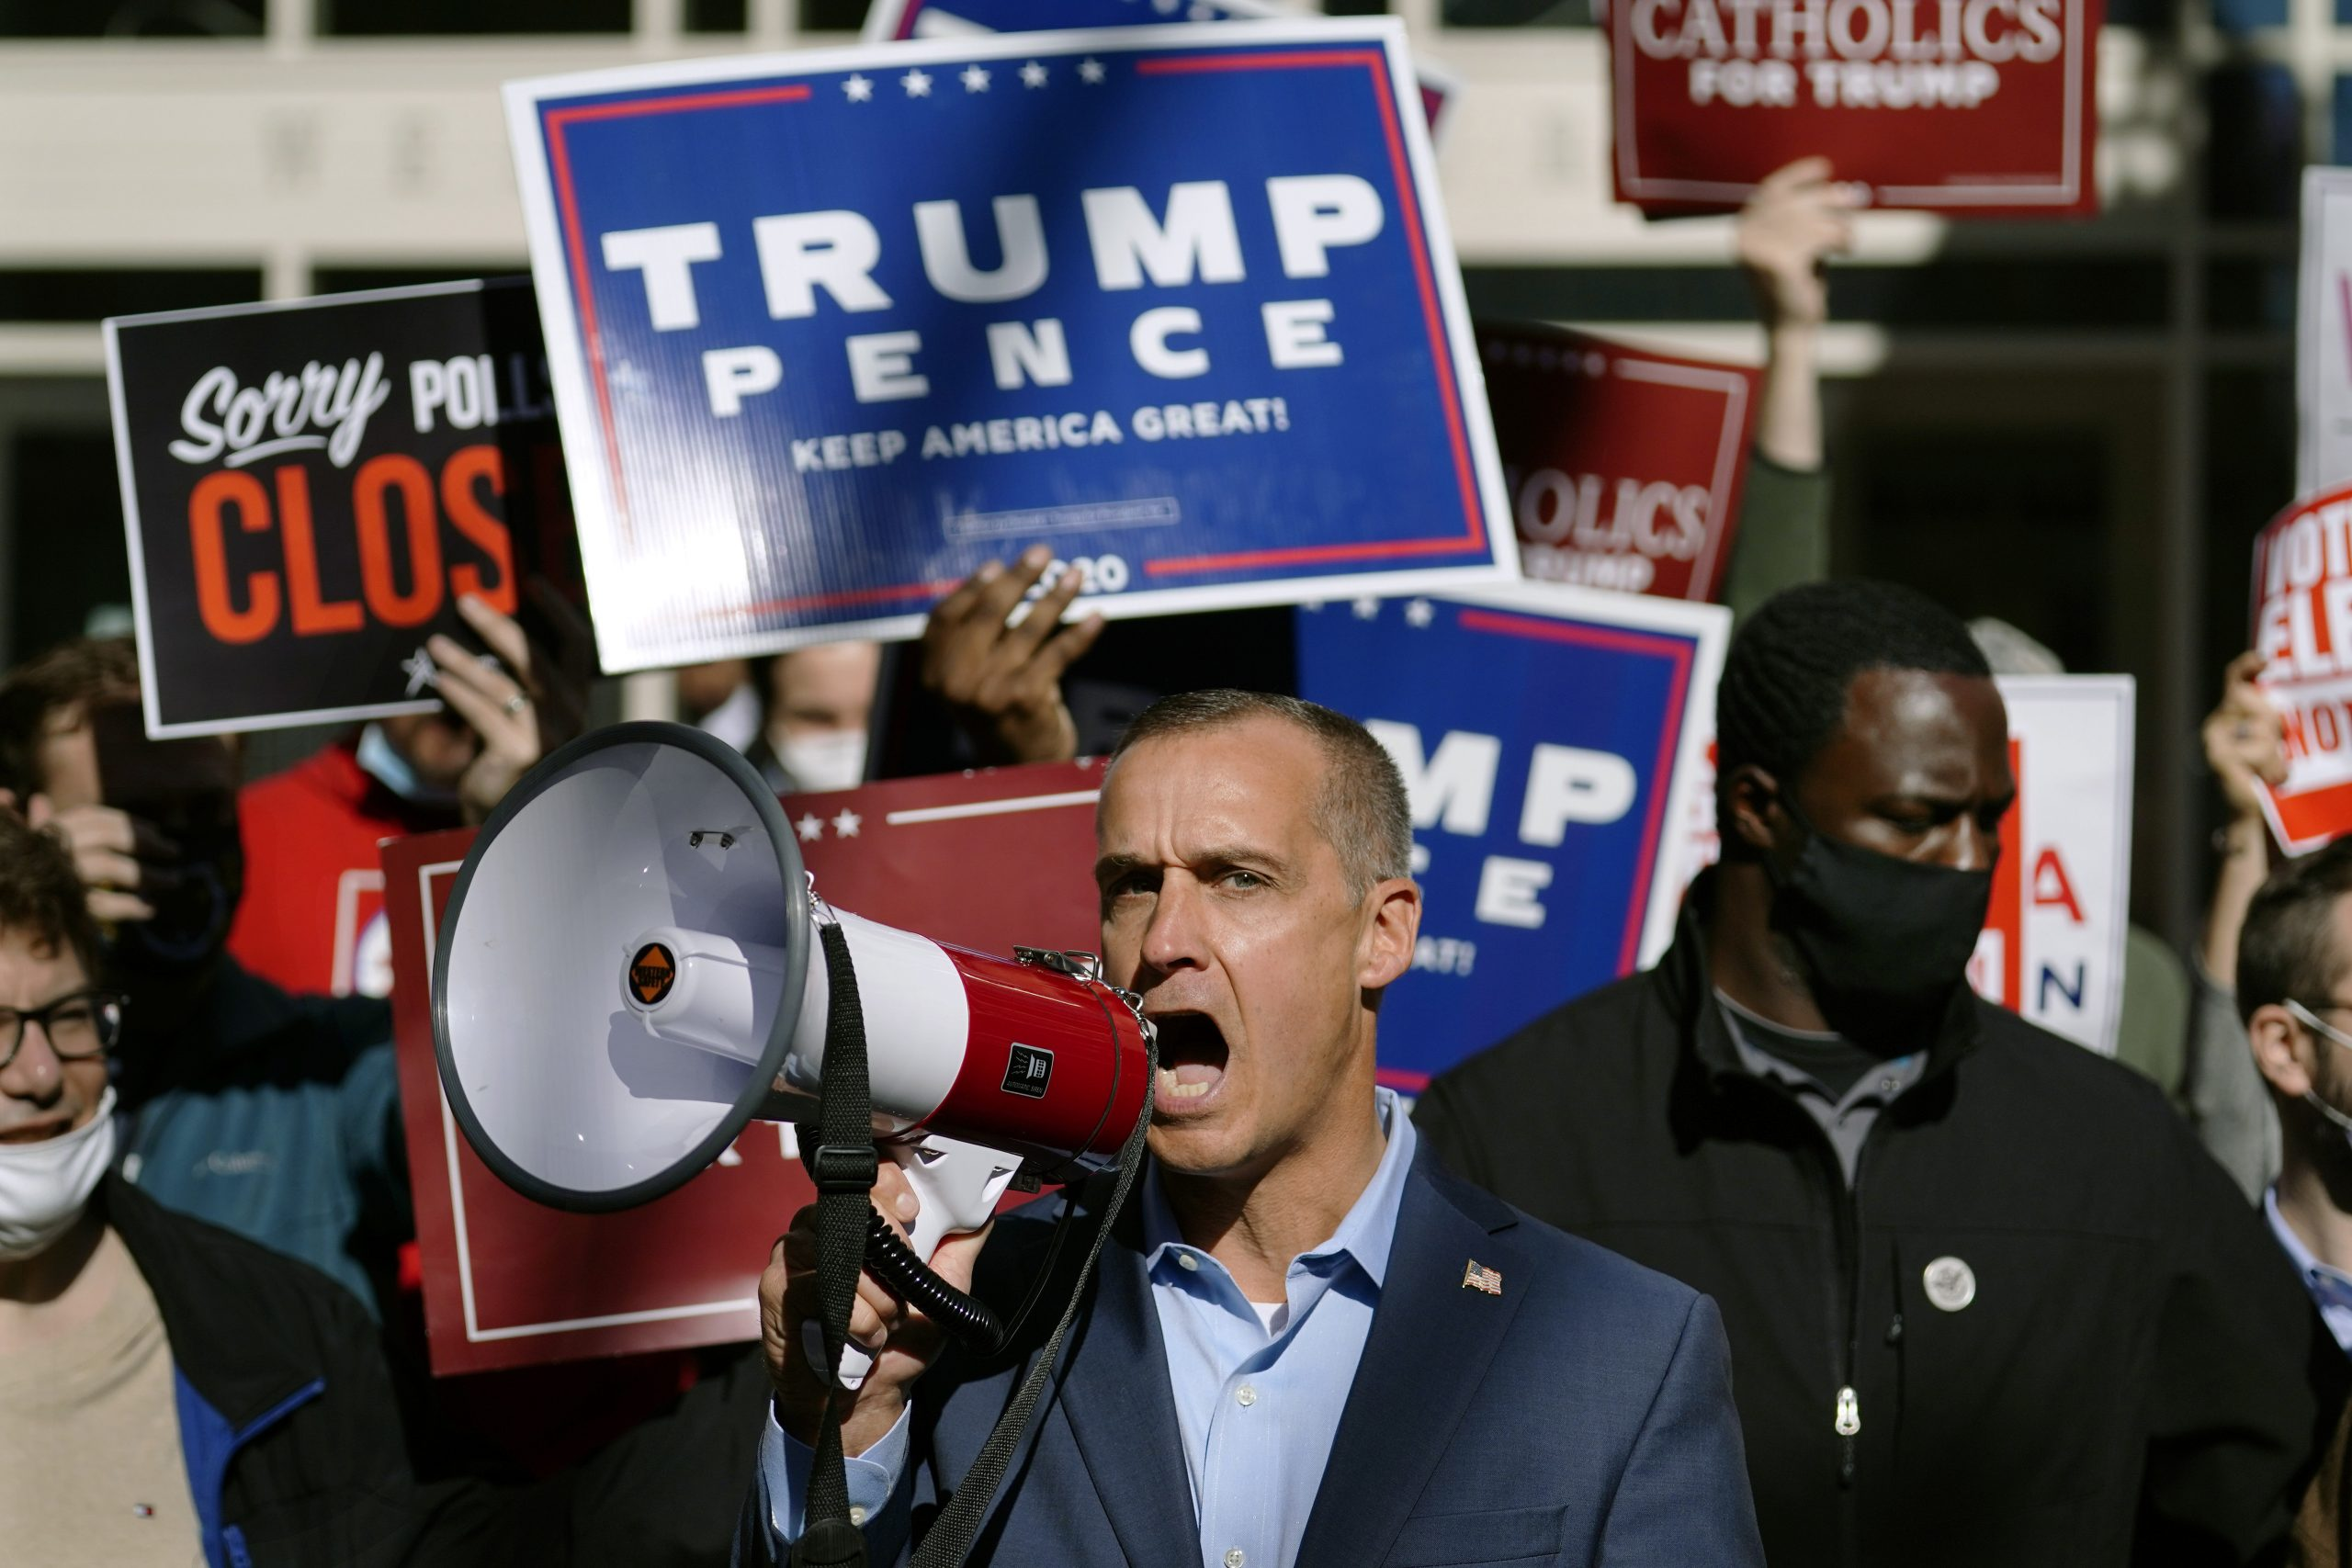 , Confused Trump Supporters Can't Decide Whether to 'Stop the Count' or 'Count Every Vote', Saubio Making Wealth